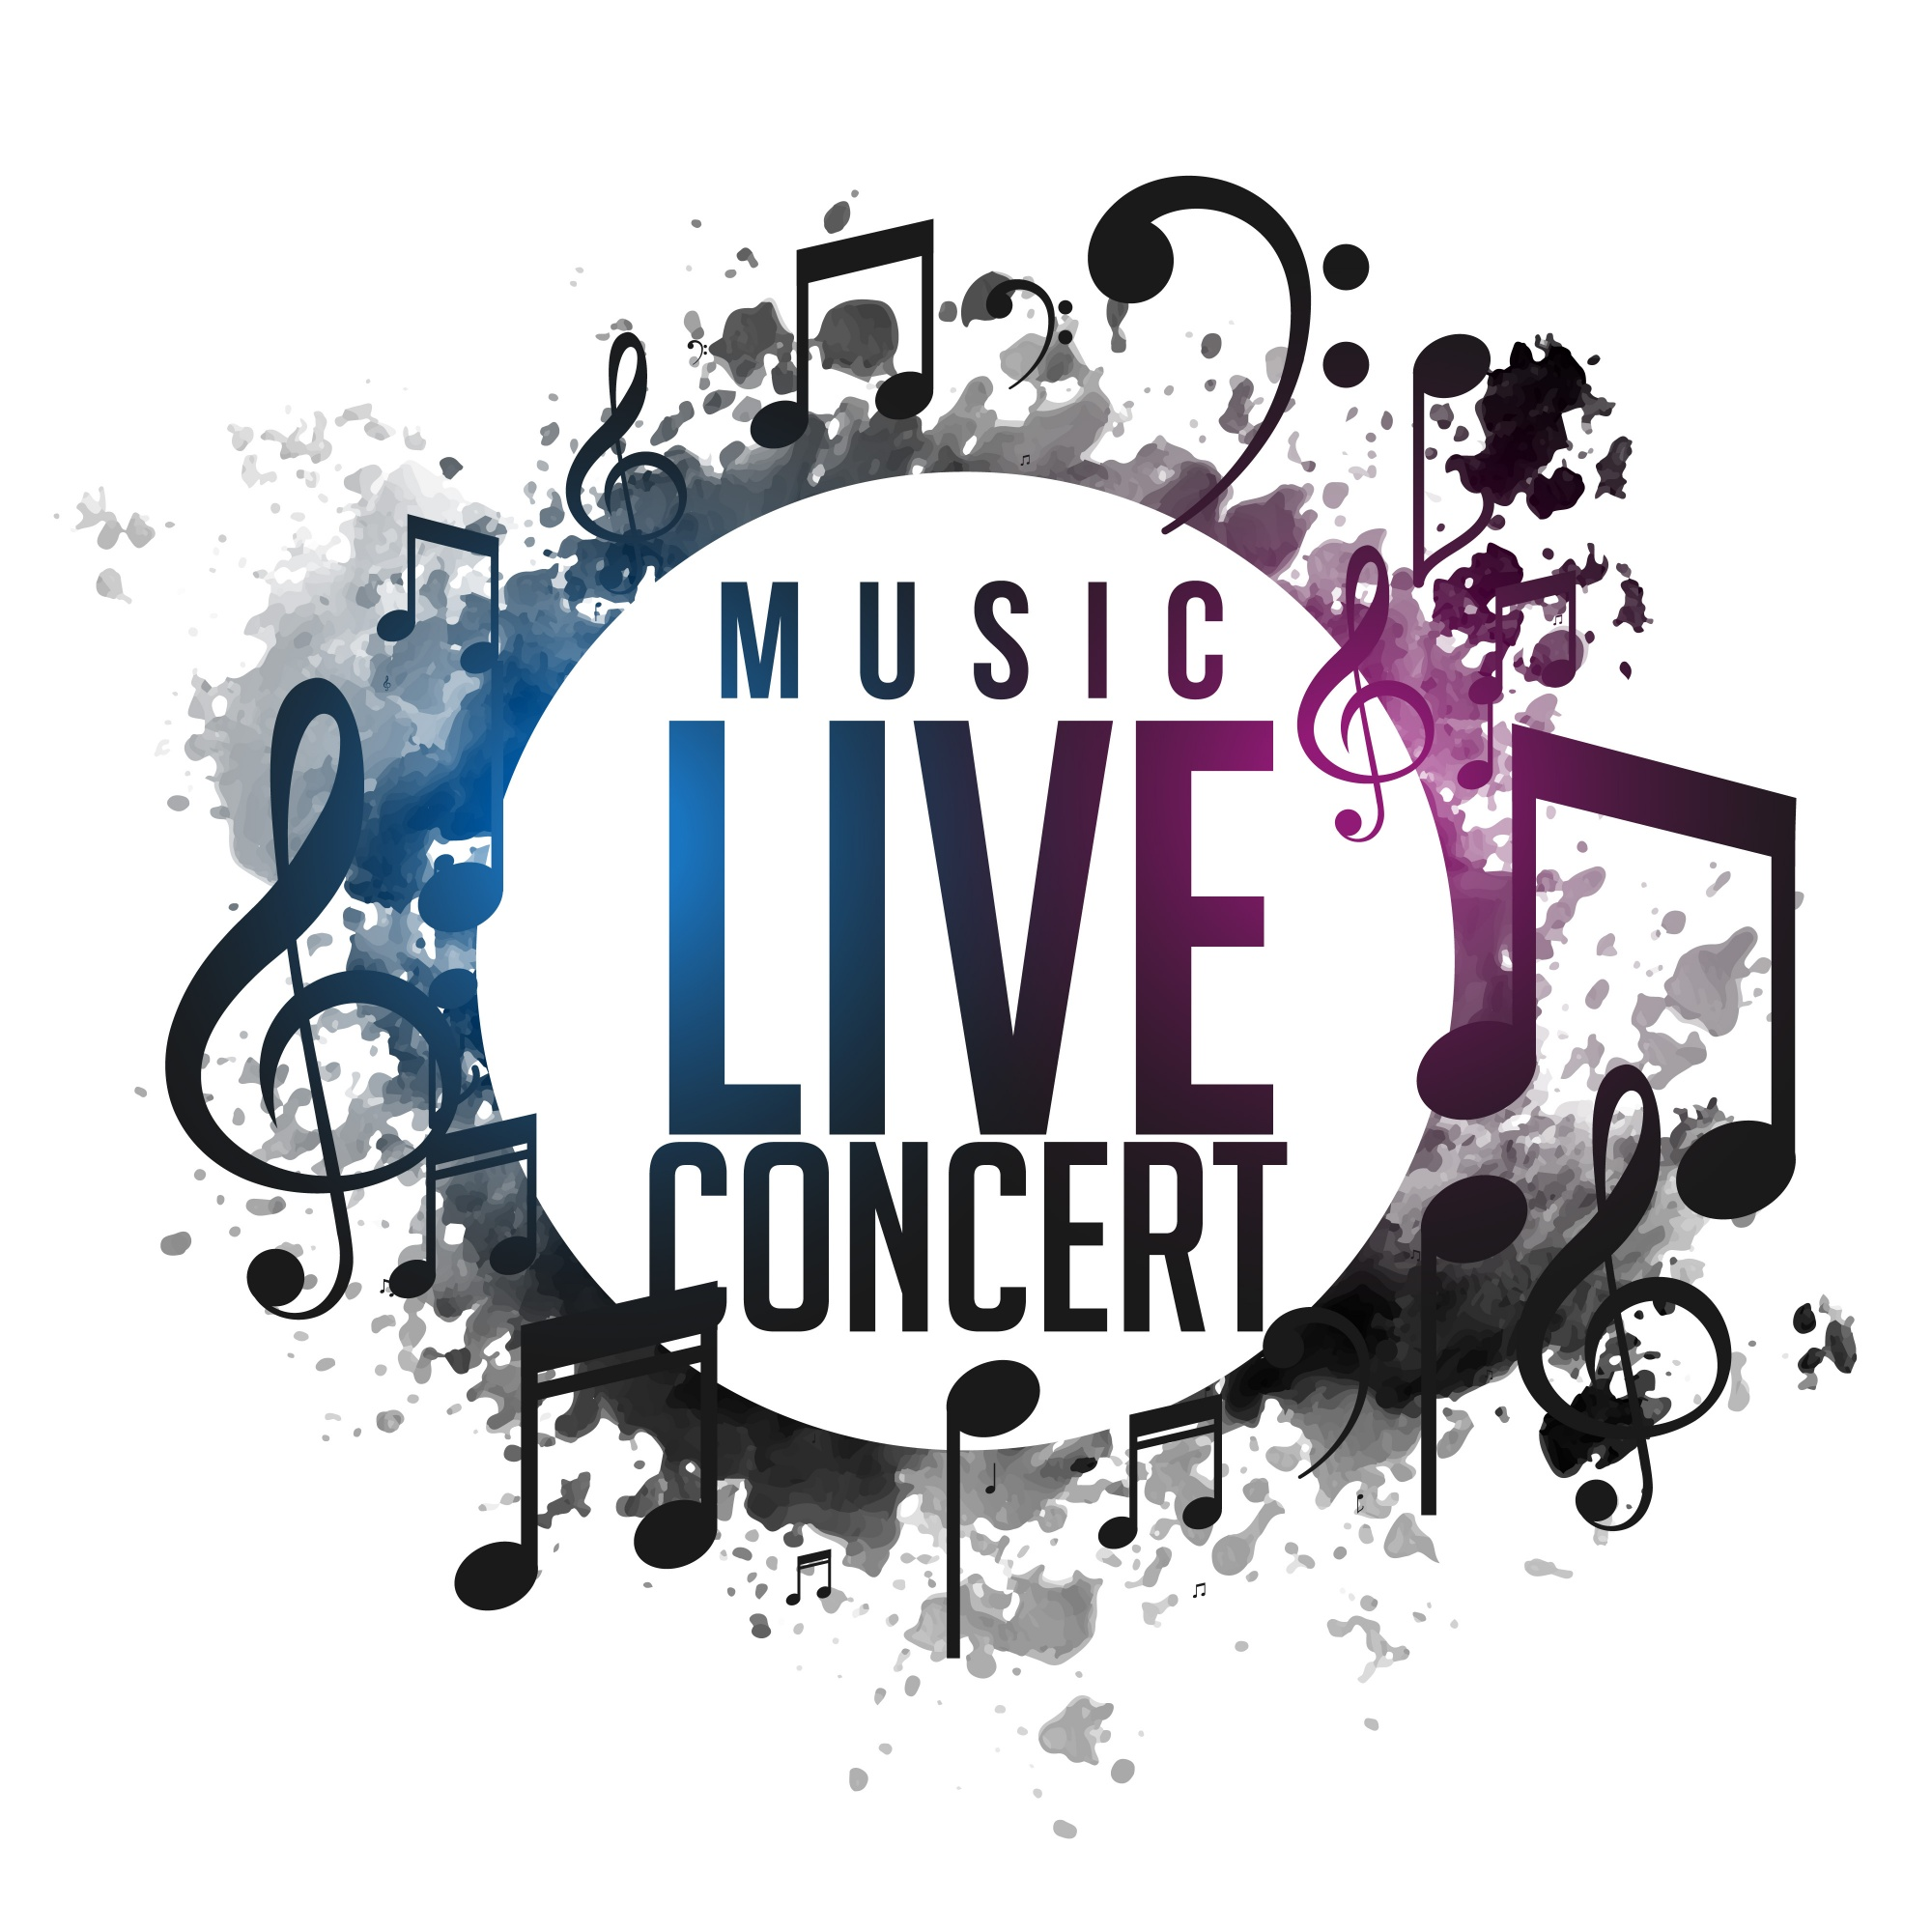 Abstract grunge music live concert poster design